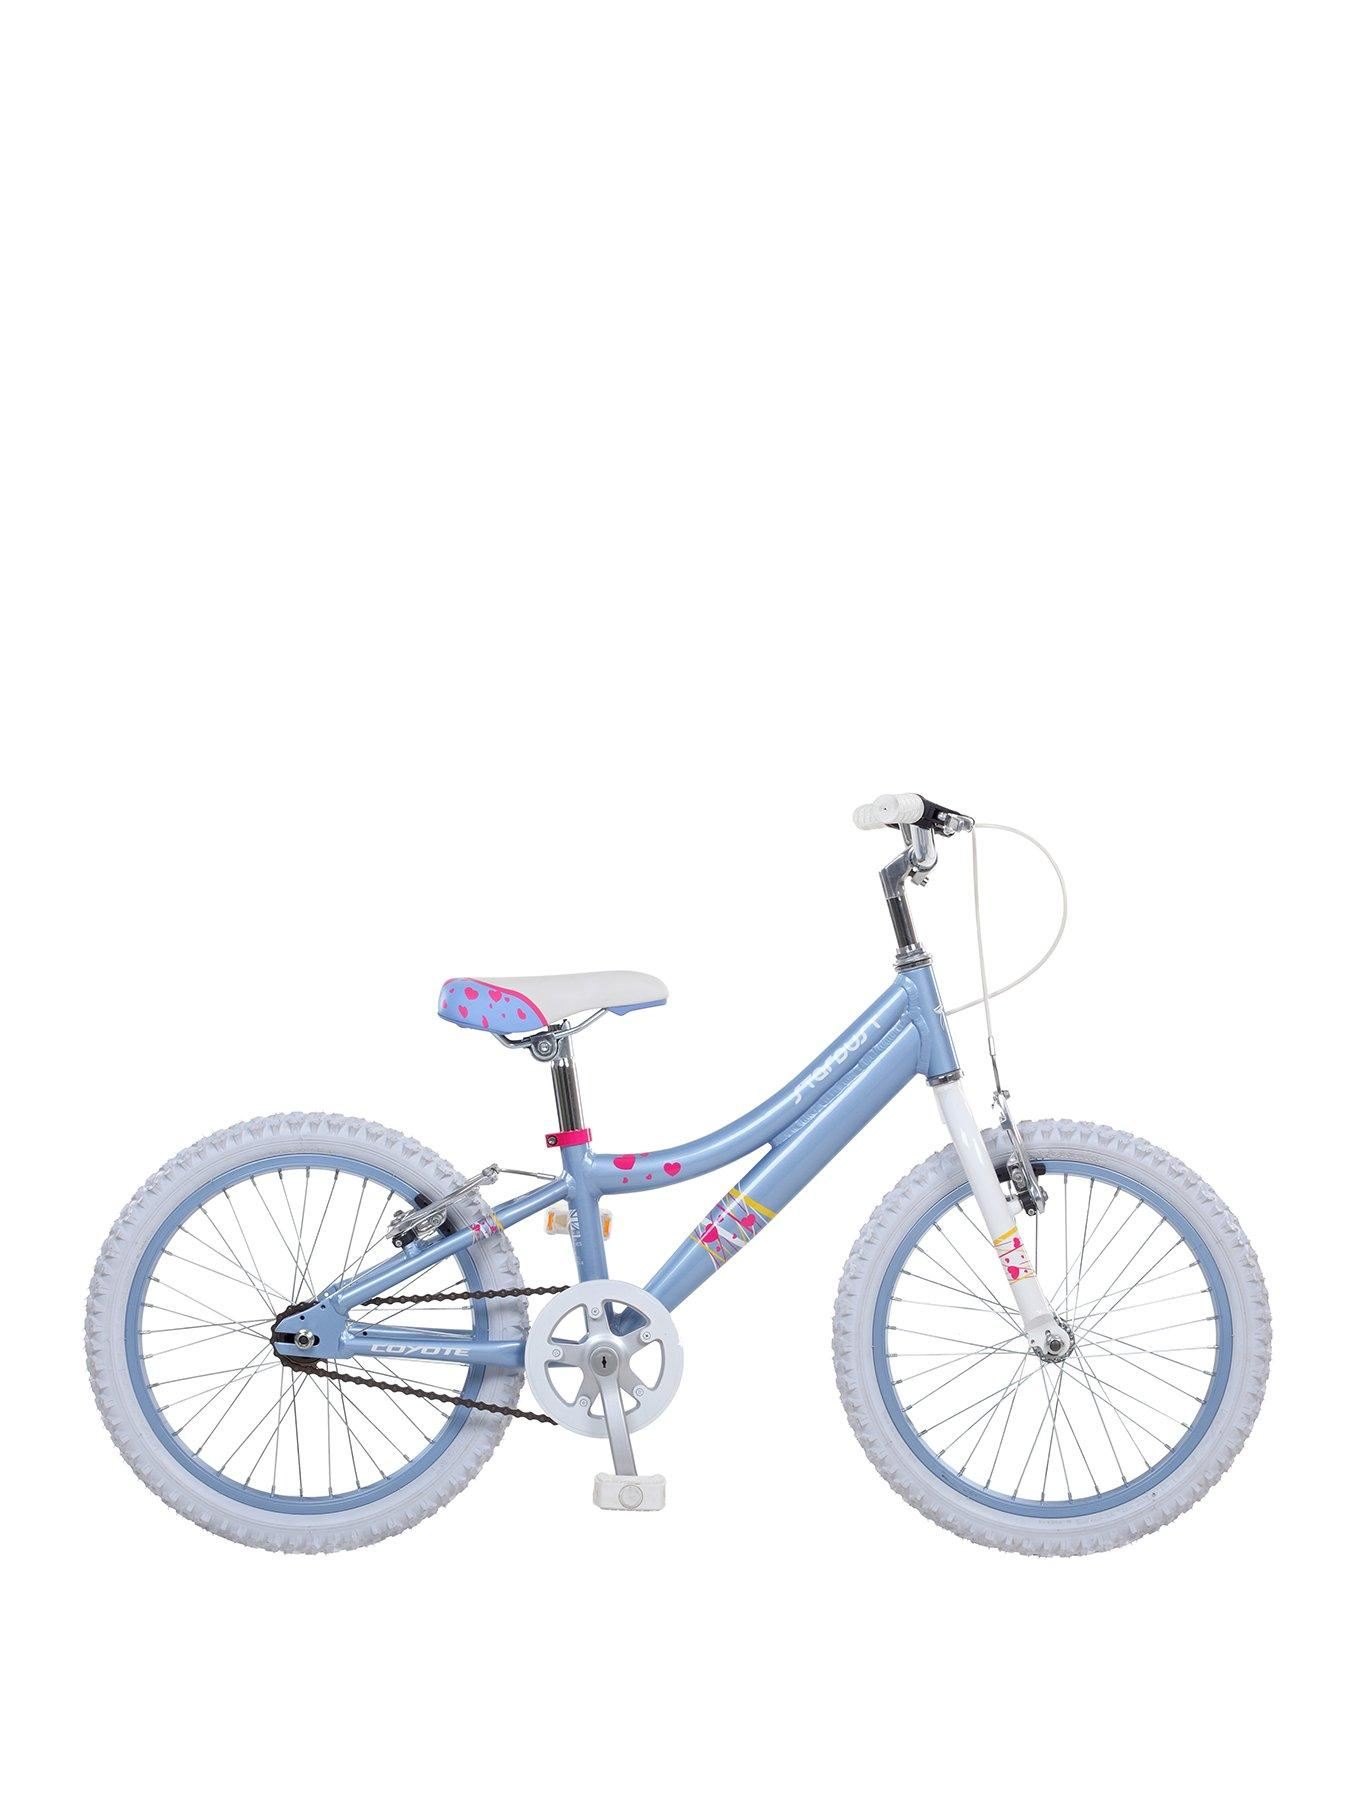 Compare prices for Coyote Stardust Alloy Girls Bikes 18 inch Wheel